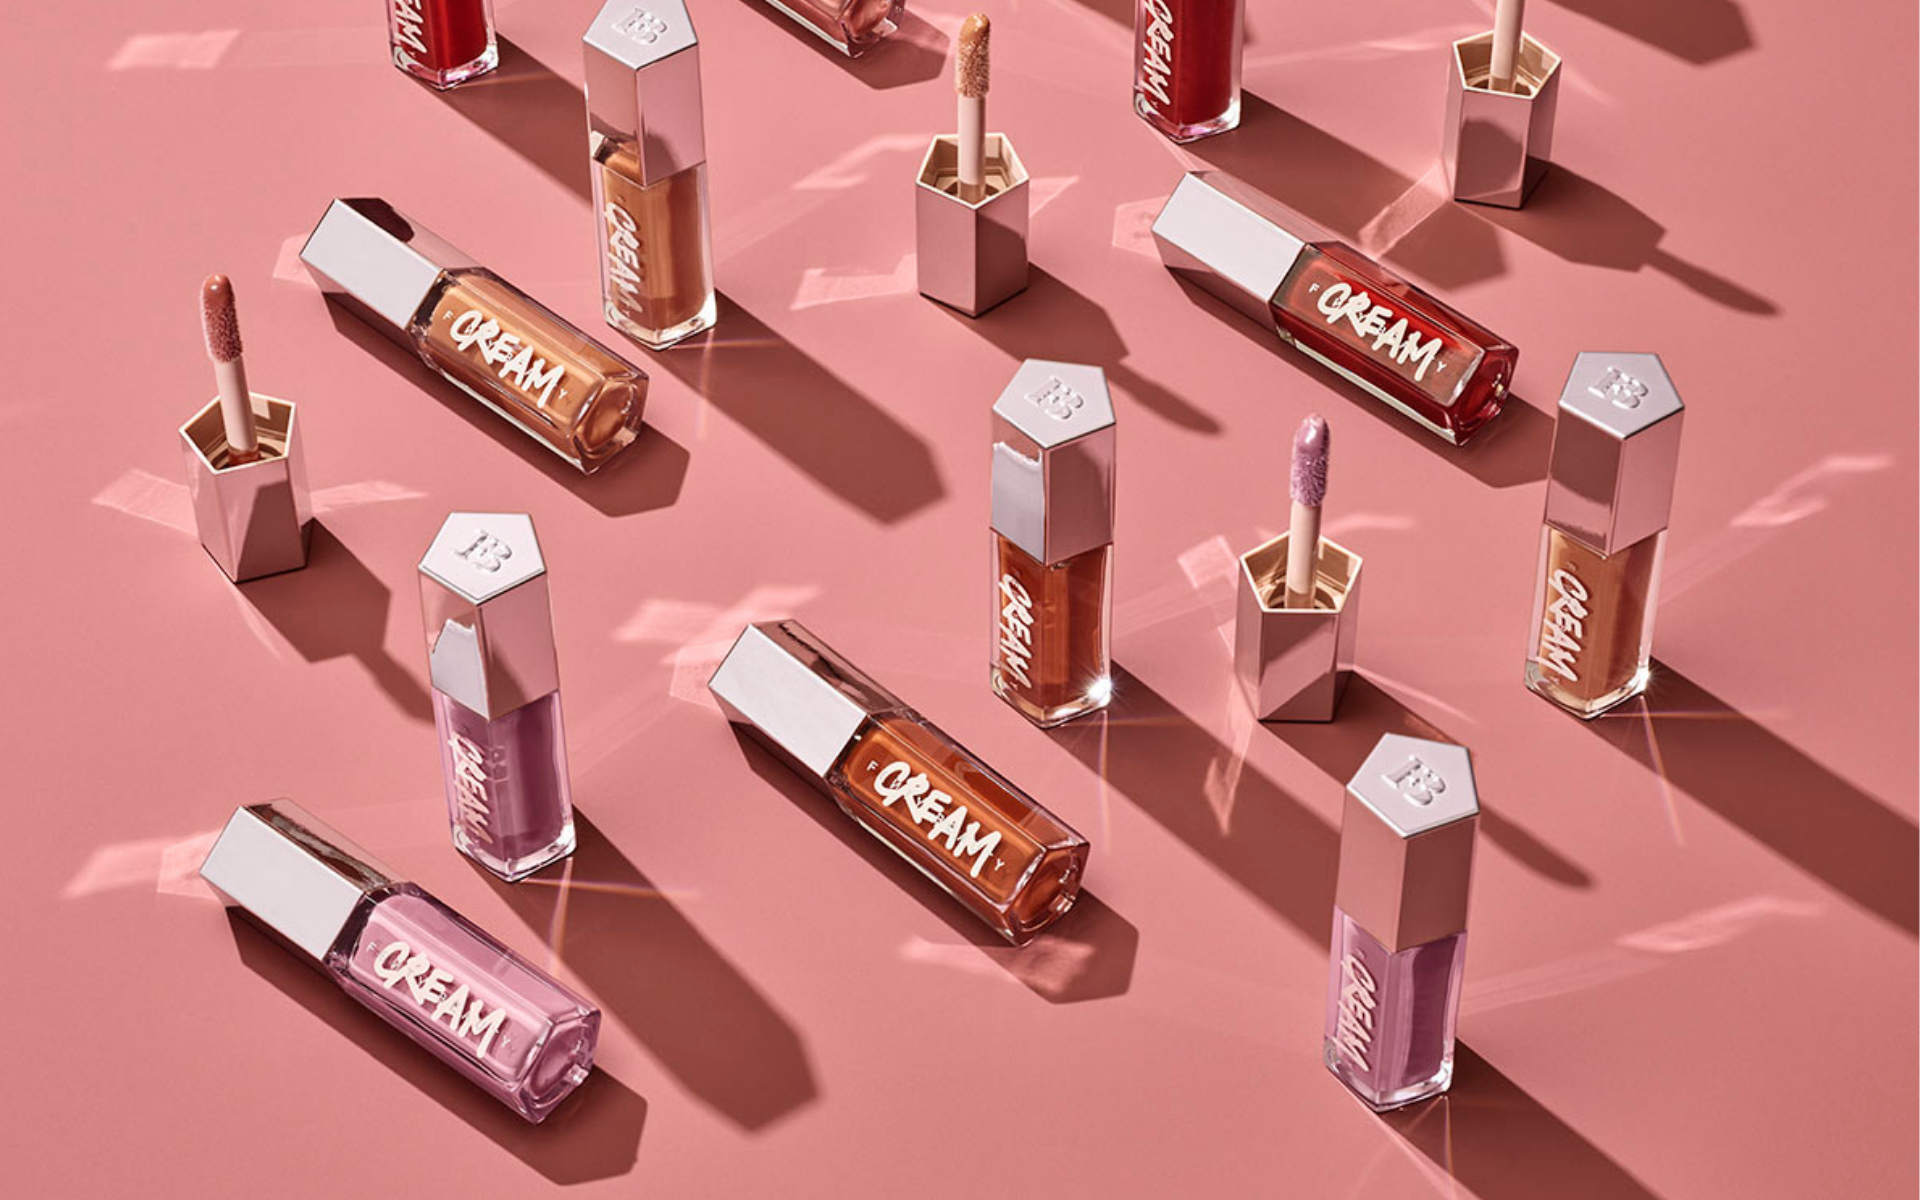 5 New Beauty Product Releases To Try In December 2020